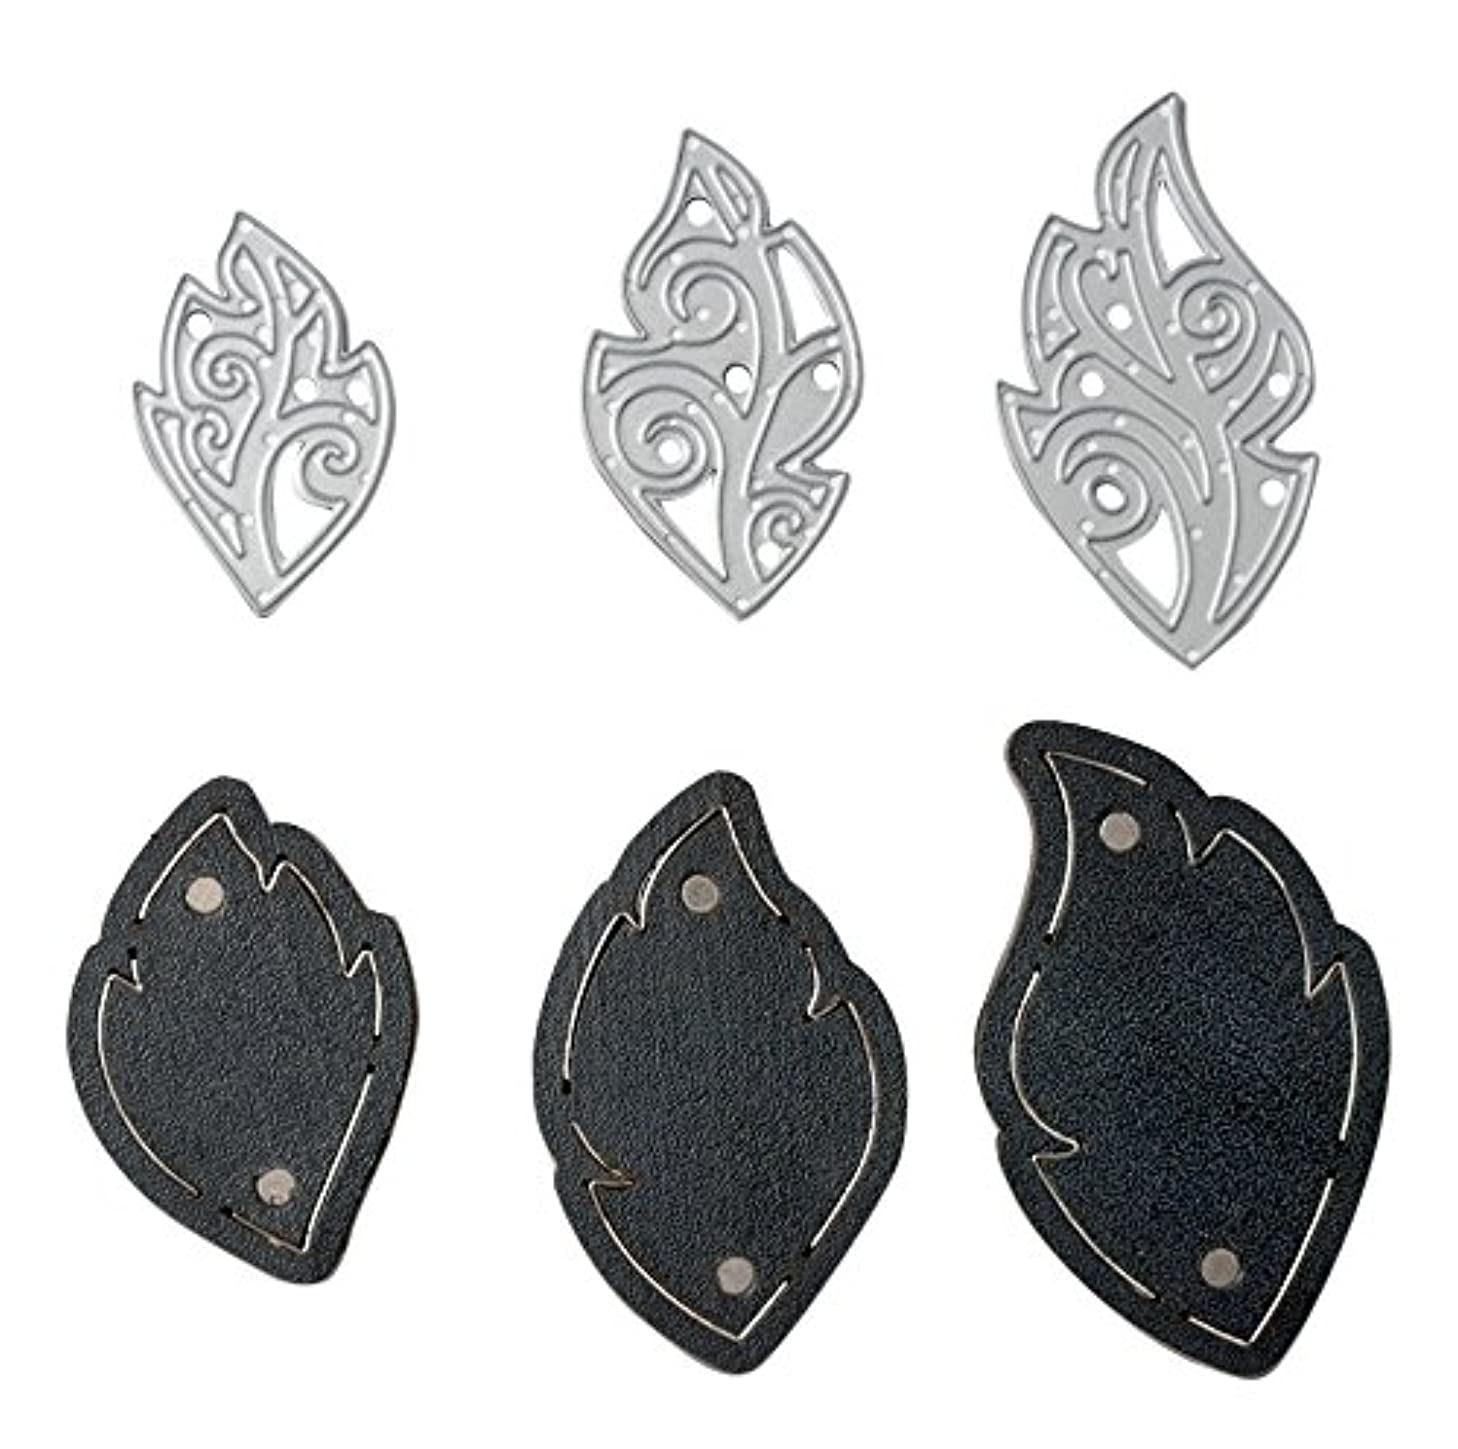 Sizzix 661330 Movers & Shapers Magnetic Die Set with Thinlits, Leaf Charms by Lindsey Serata (6 Pieces)